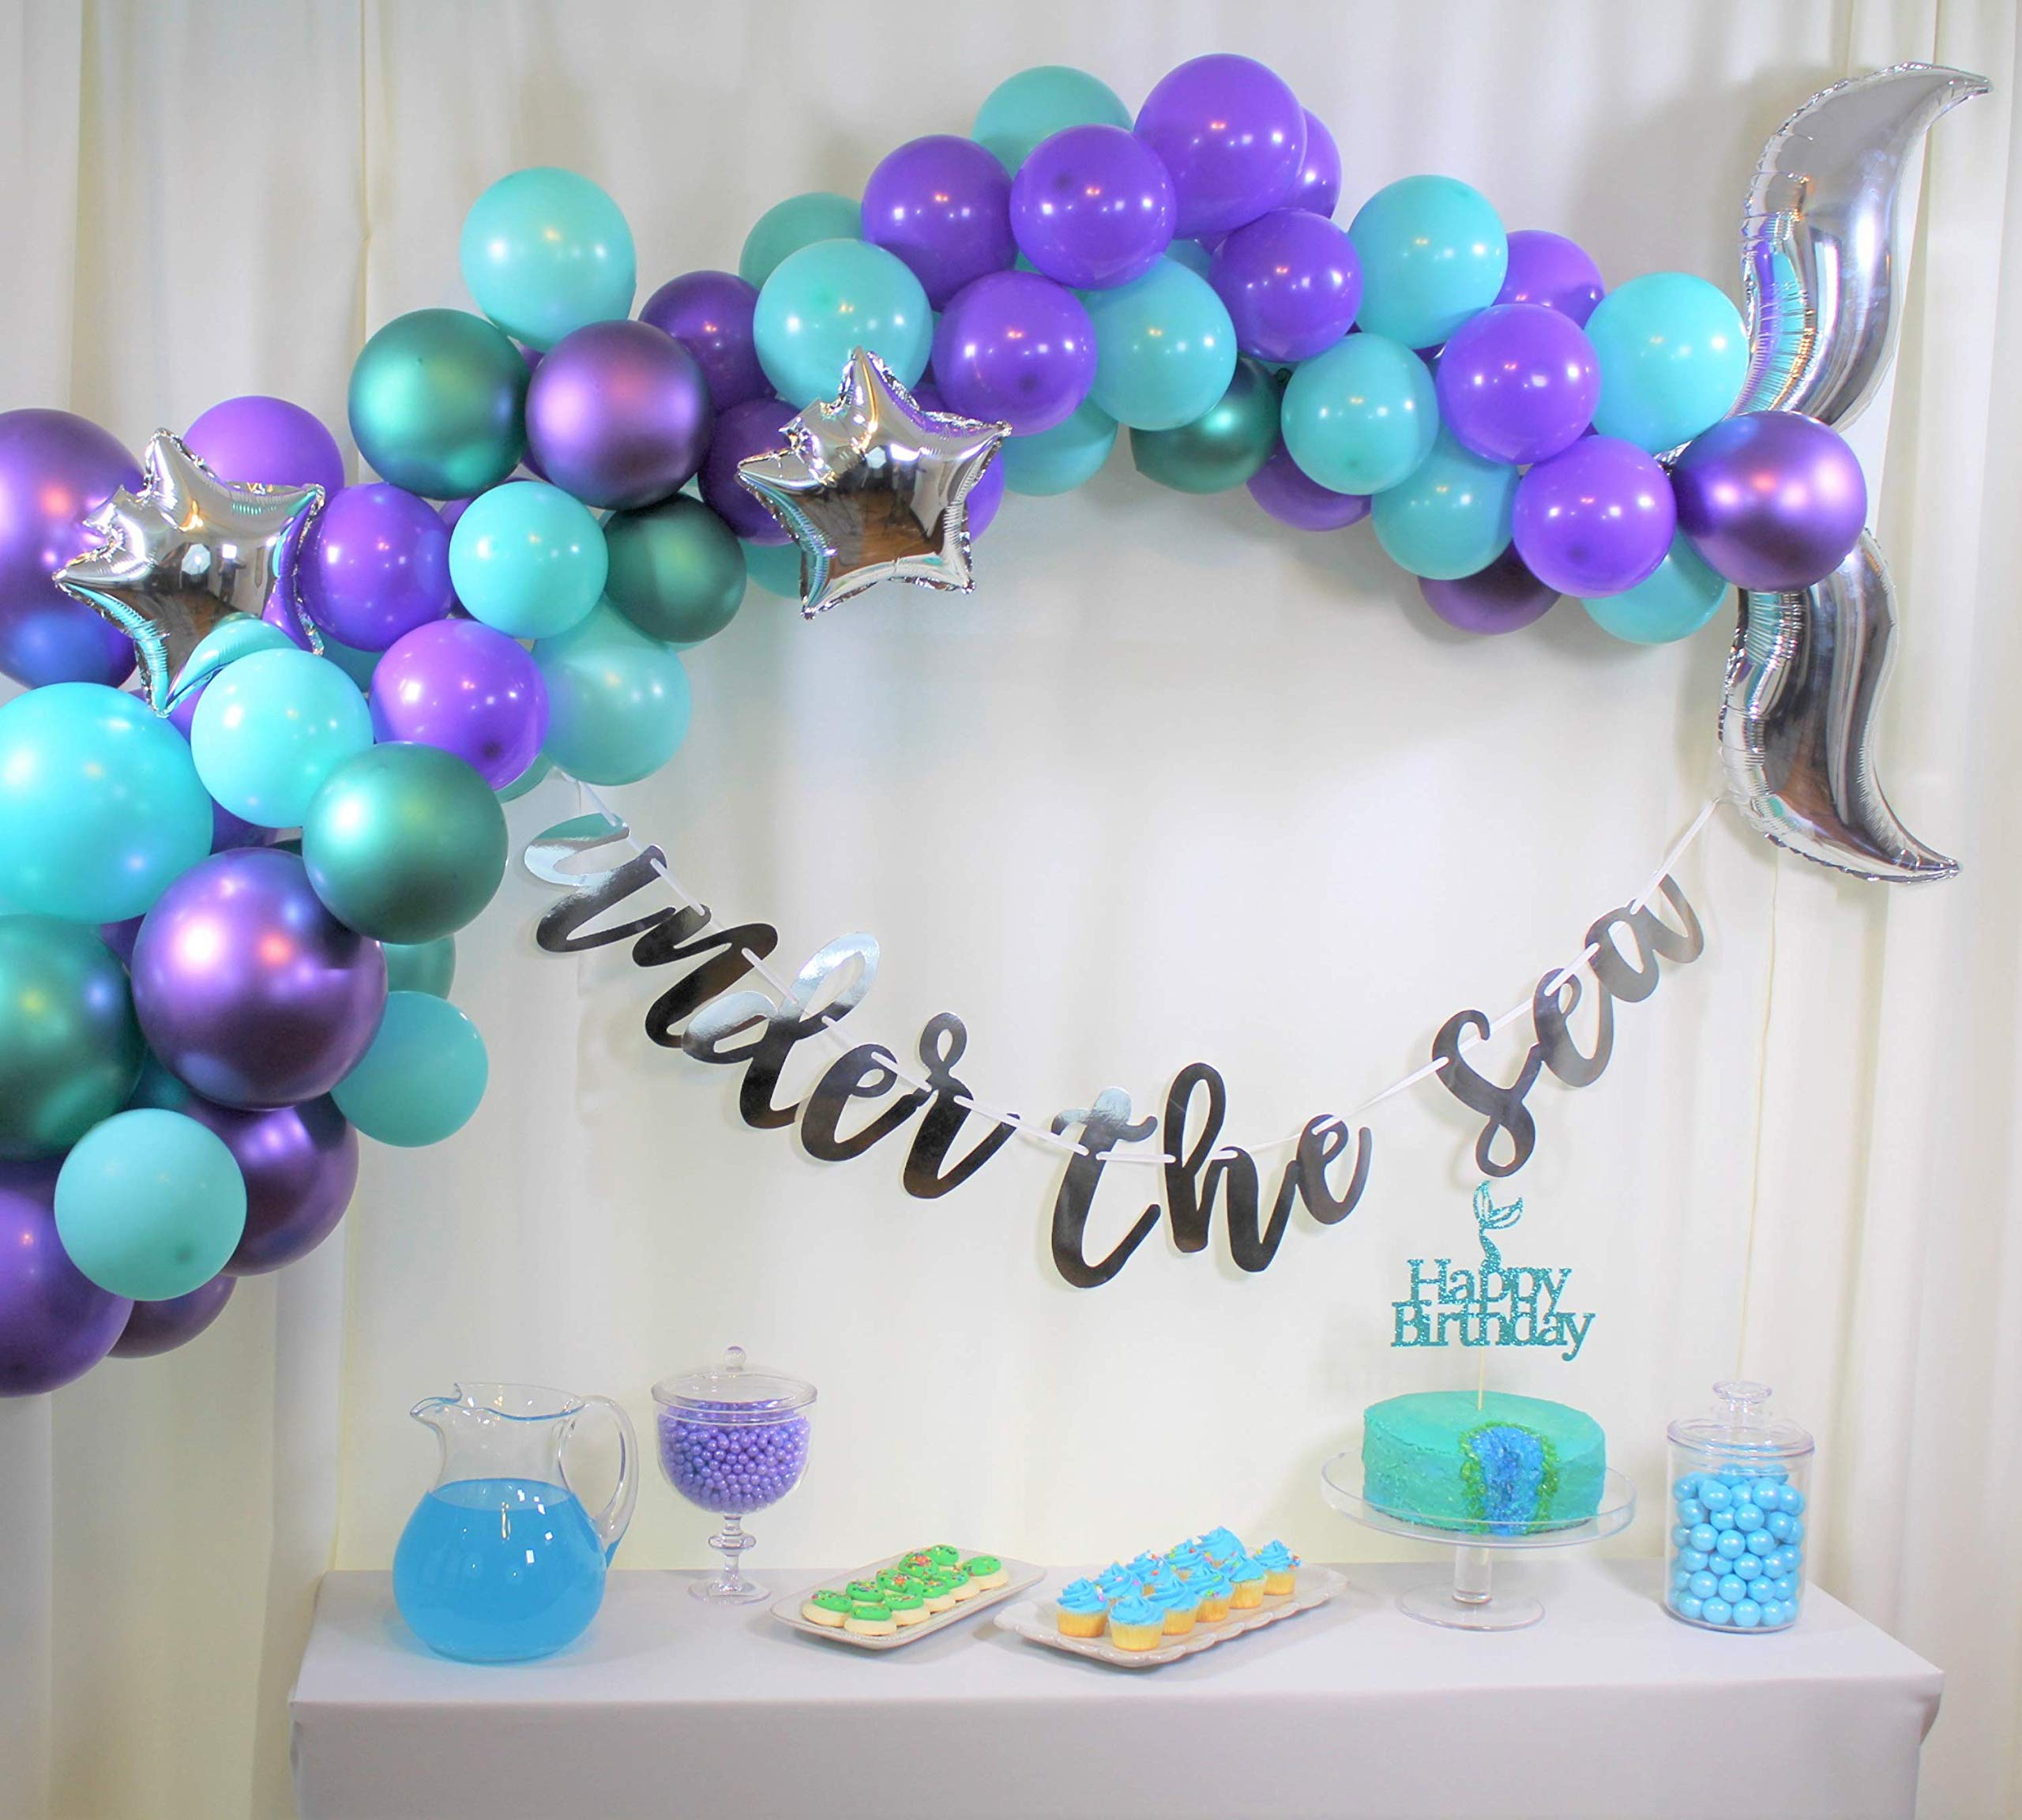 Mermaid Party Supplies, Mermaid Birthday, Under the Sea Party, Mermaid Tail Balloon Garland Set, Under the Sea Pre-strung Banner, Mermaid Cake Topper, Balloon Arch Tool Kit, Happy Birthday for Girls